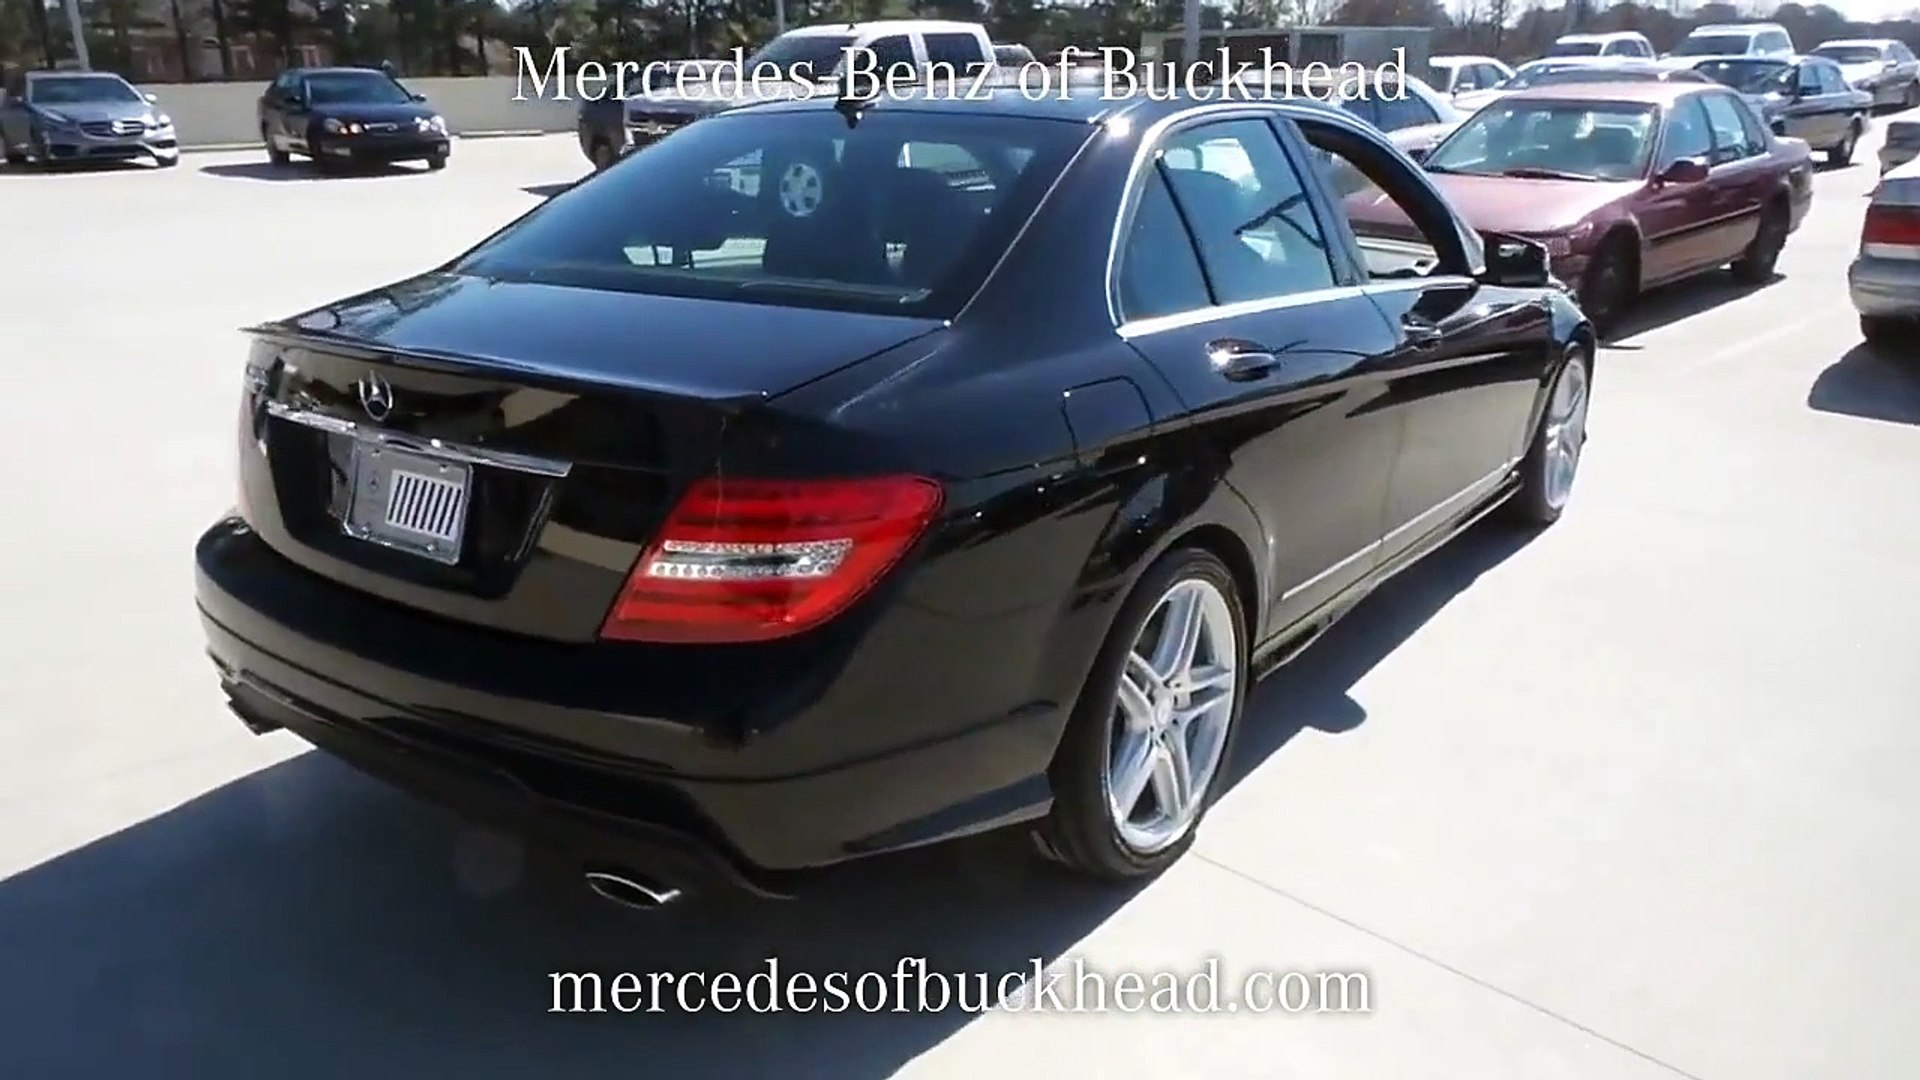 SOLD - USED 2013 MERCEDES-BENZ C350 SPORT for sale at Mercedes-Benz of Buckhead  #P6344